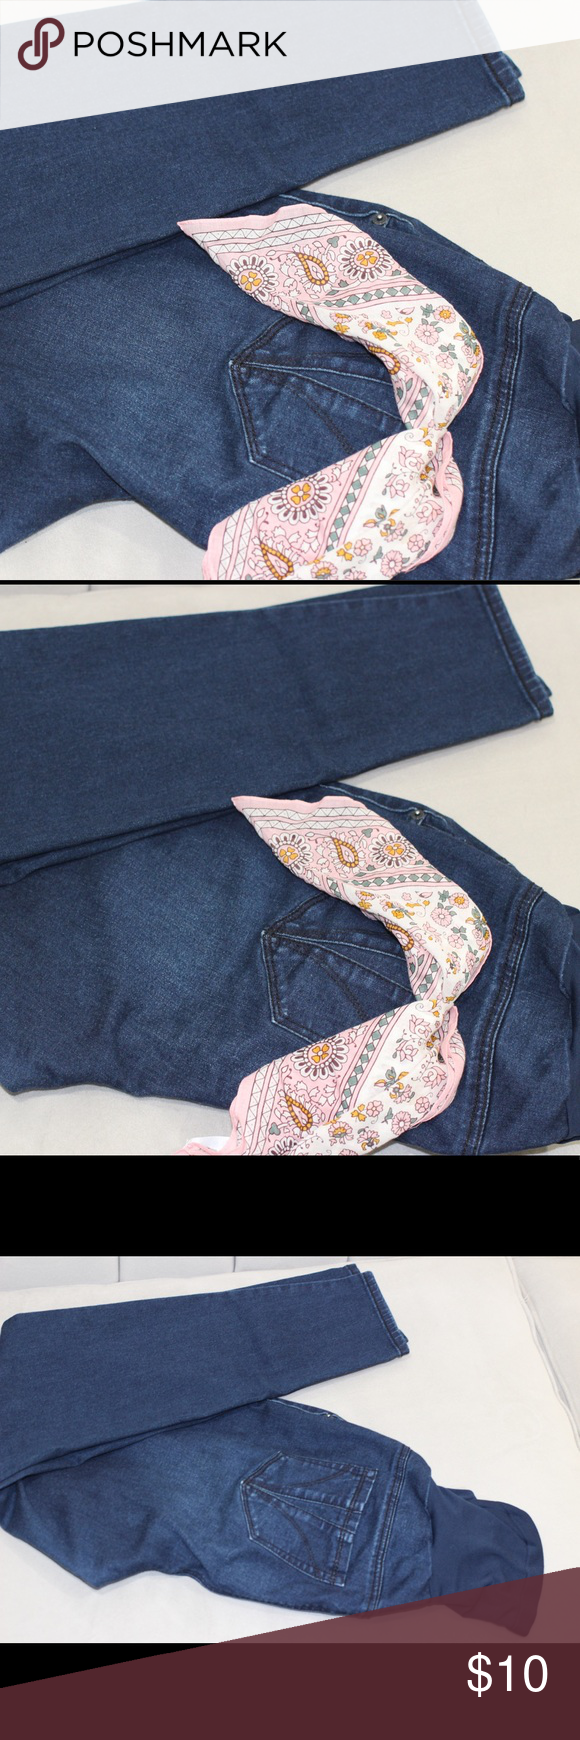 e624899542b Maternity jeans size 1x These maternity jeans are in very good condition.  Bundle and save 10% Indigo Blue Pants